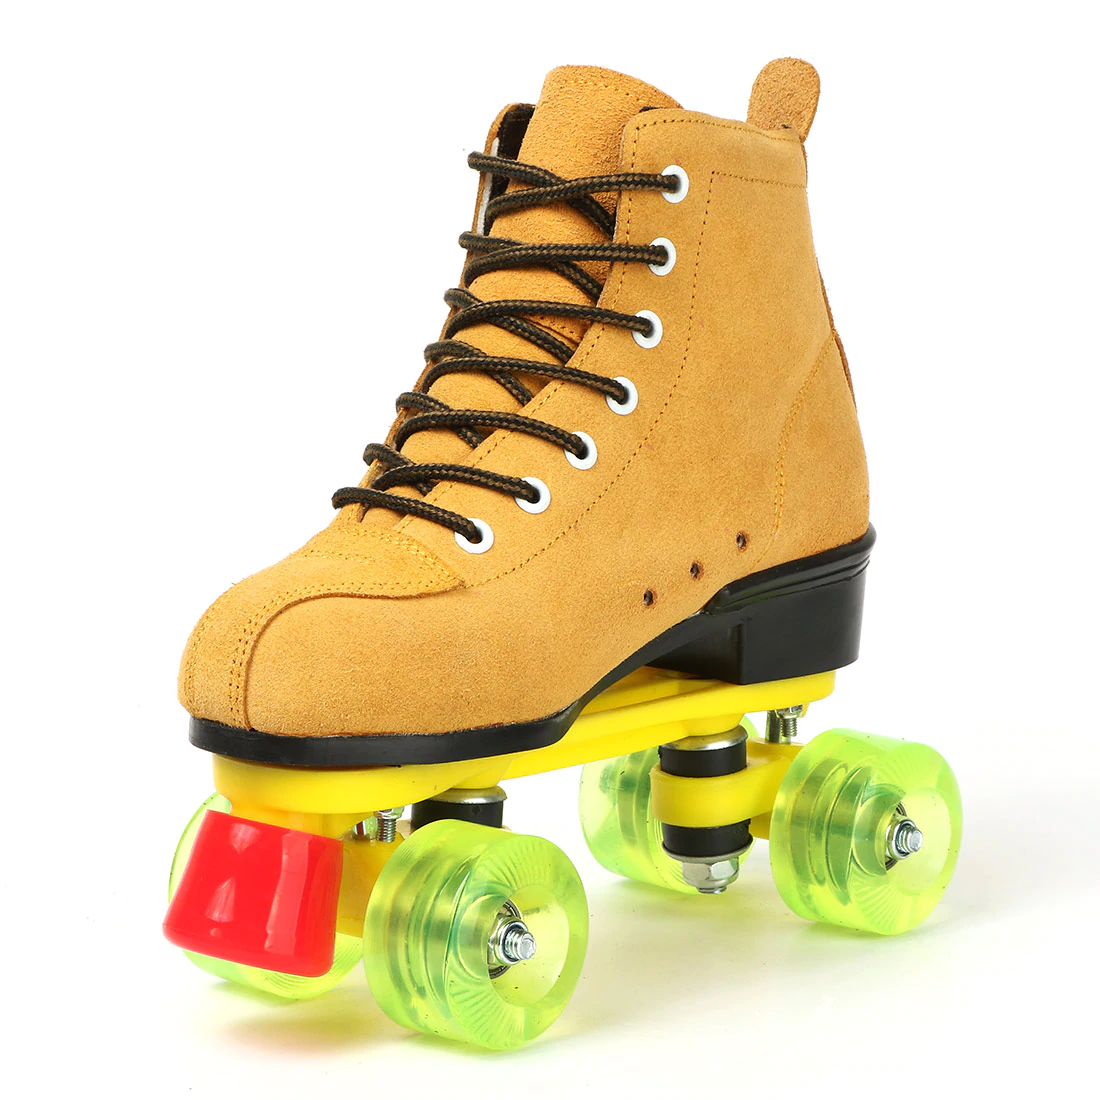 Cowhide Yellow and Green Quad Roller Skates